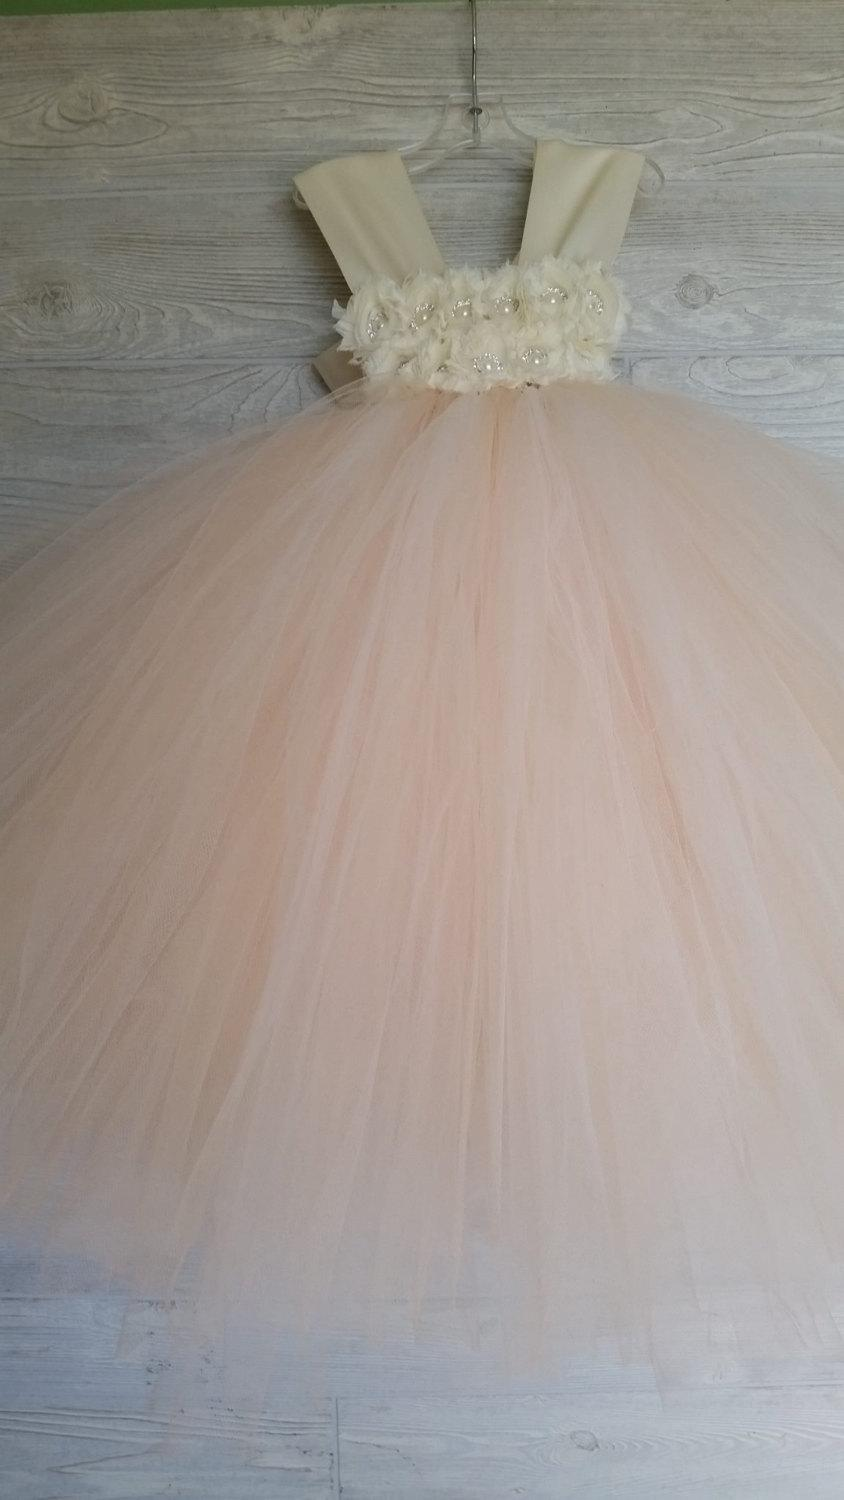 Düğün - Flower girl dress - Tulle flower girl dress - Ivory Dress -Tulle dress-Infant/Toddler -Pageant dress -Princess dress-Champagne flower dress